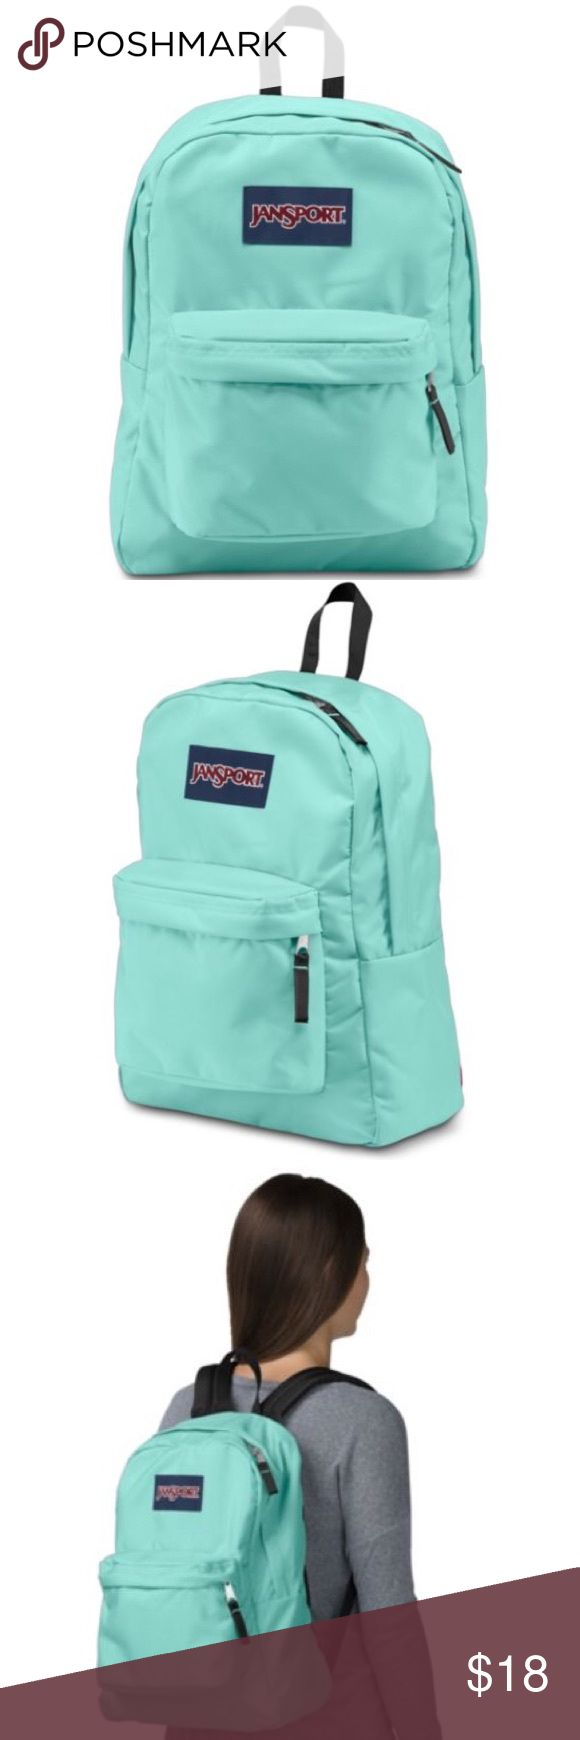 """Jansport SuperBreak Aqua Dash Backpack Brand new WITHOUT tags, never been used. This JanSport SuperBreak Aqua Dash Backpack is the perfect color! Kind of a mix between Tiffany Blue & Mint Green. Featuring its classic silhouette, the JanSport SuperBreak is ultralight for everyday use. One large zippered compartment, a small front zippered pocket with organizer. Padded adjustable shoulder straps. Dimensions: 16.7"""" x 13"""" x 8.5"""". I also have the Coral Sparkle color available! Jansport Bags…"""